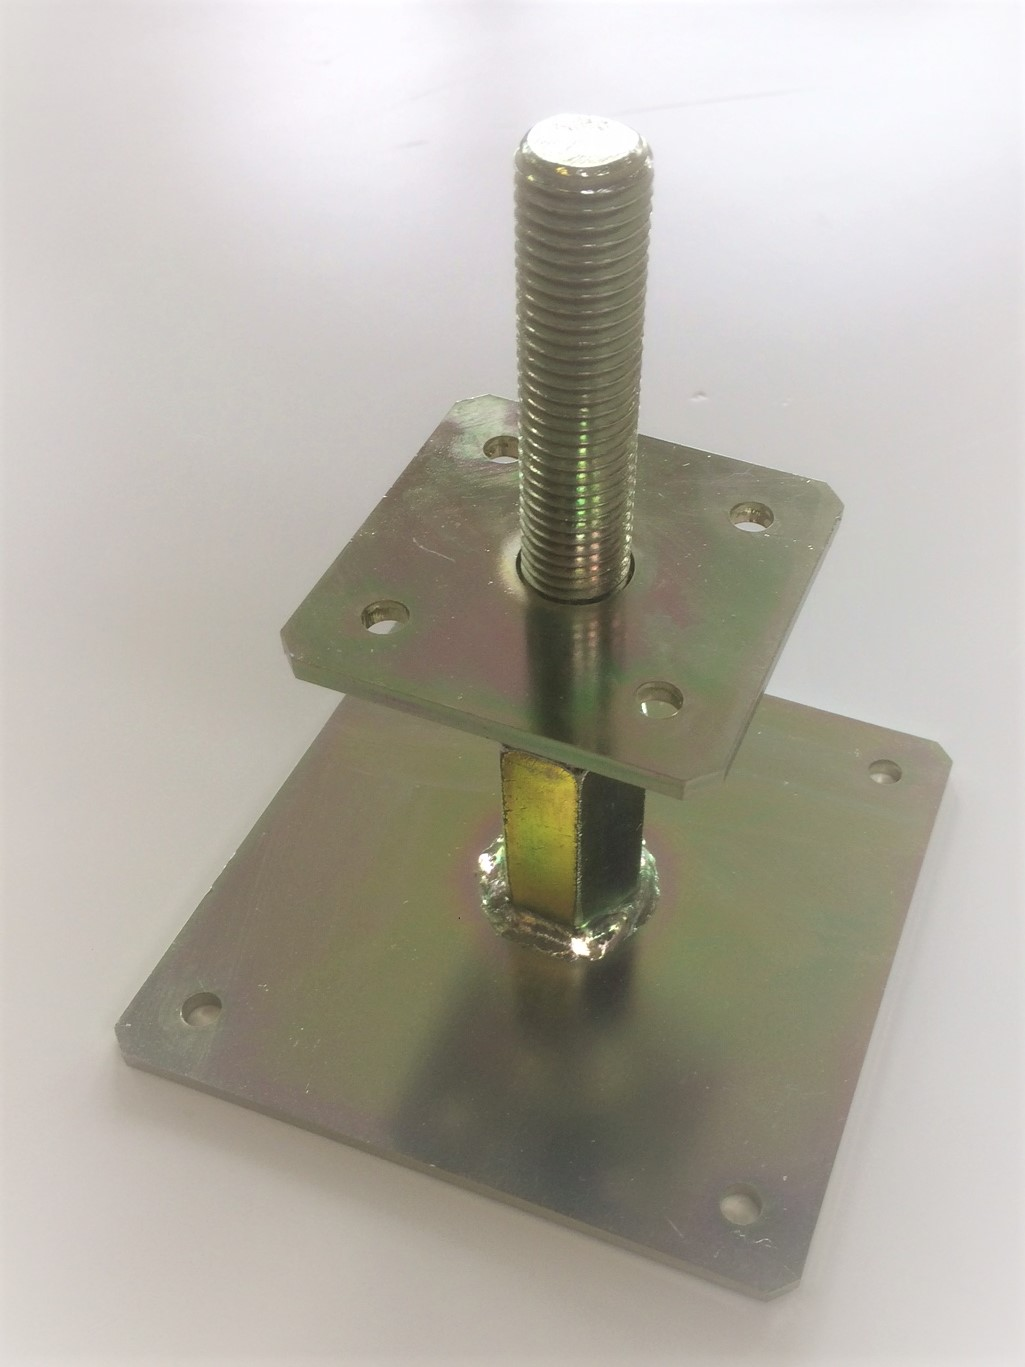 Adjustable post base top plate- 80 x 80 suitable for post size 100 x 100- code: APB1-TP